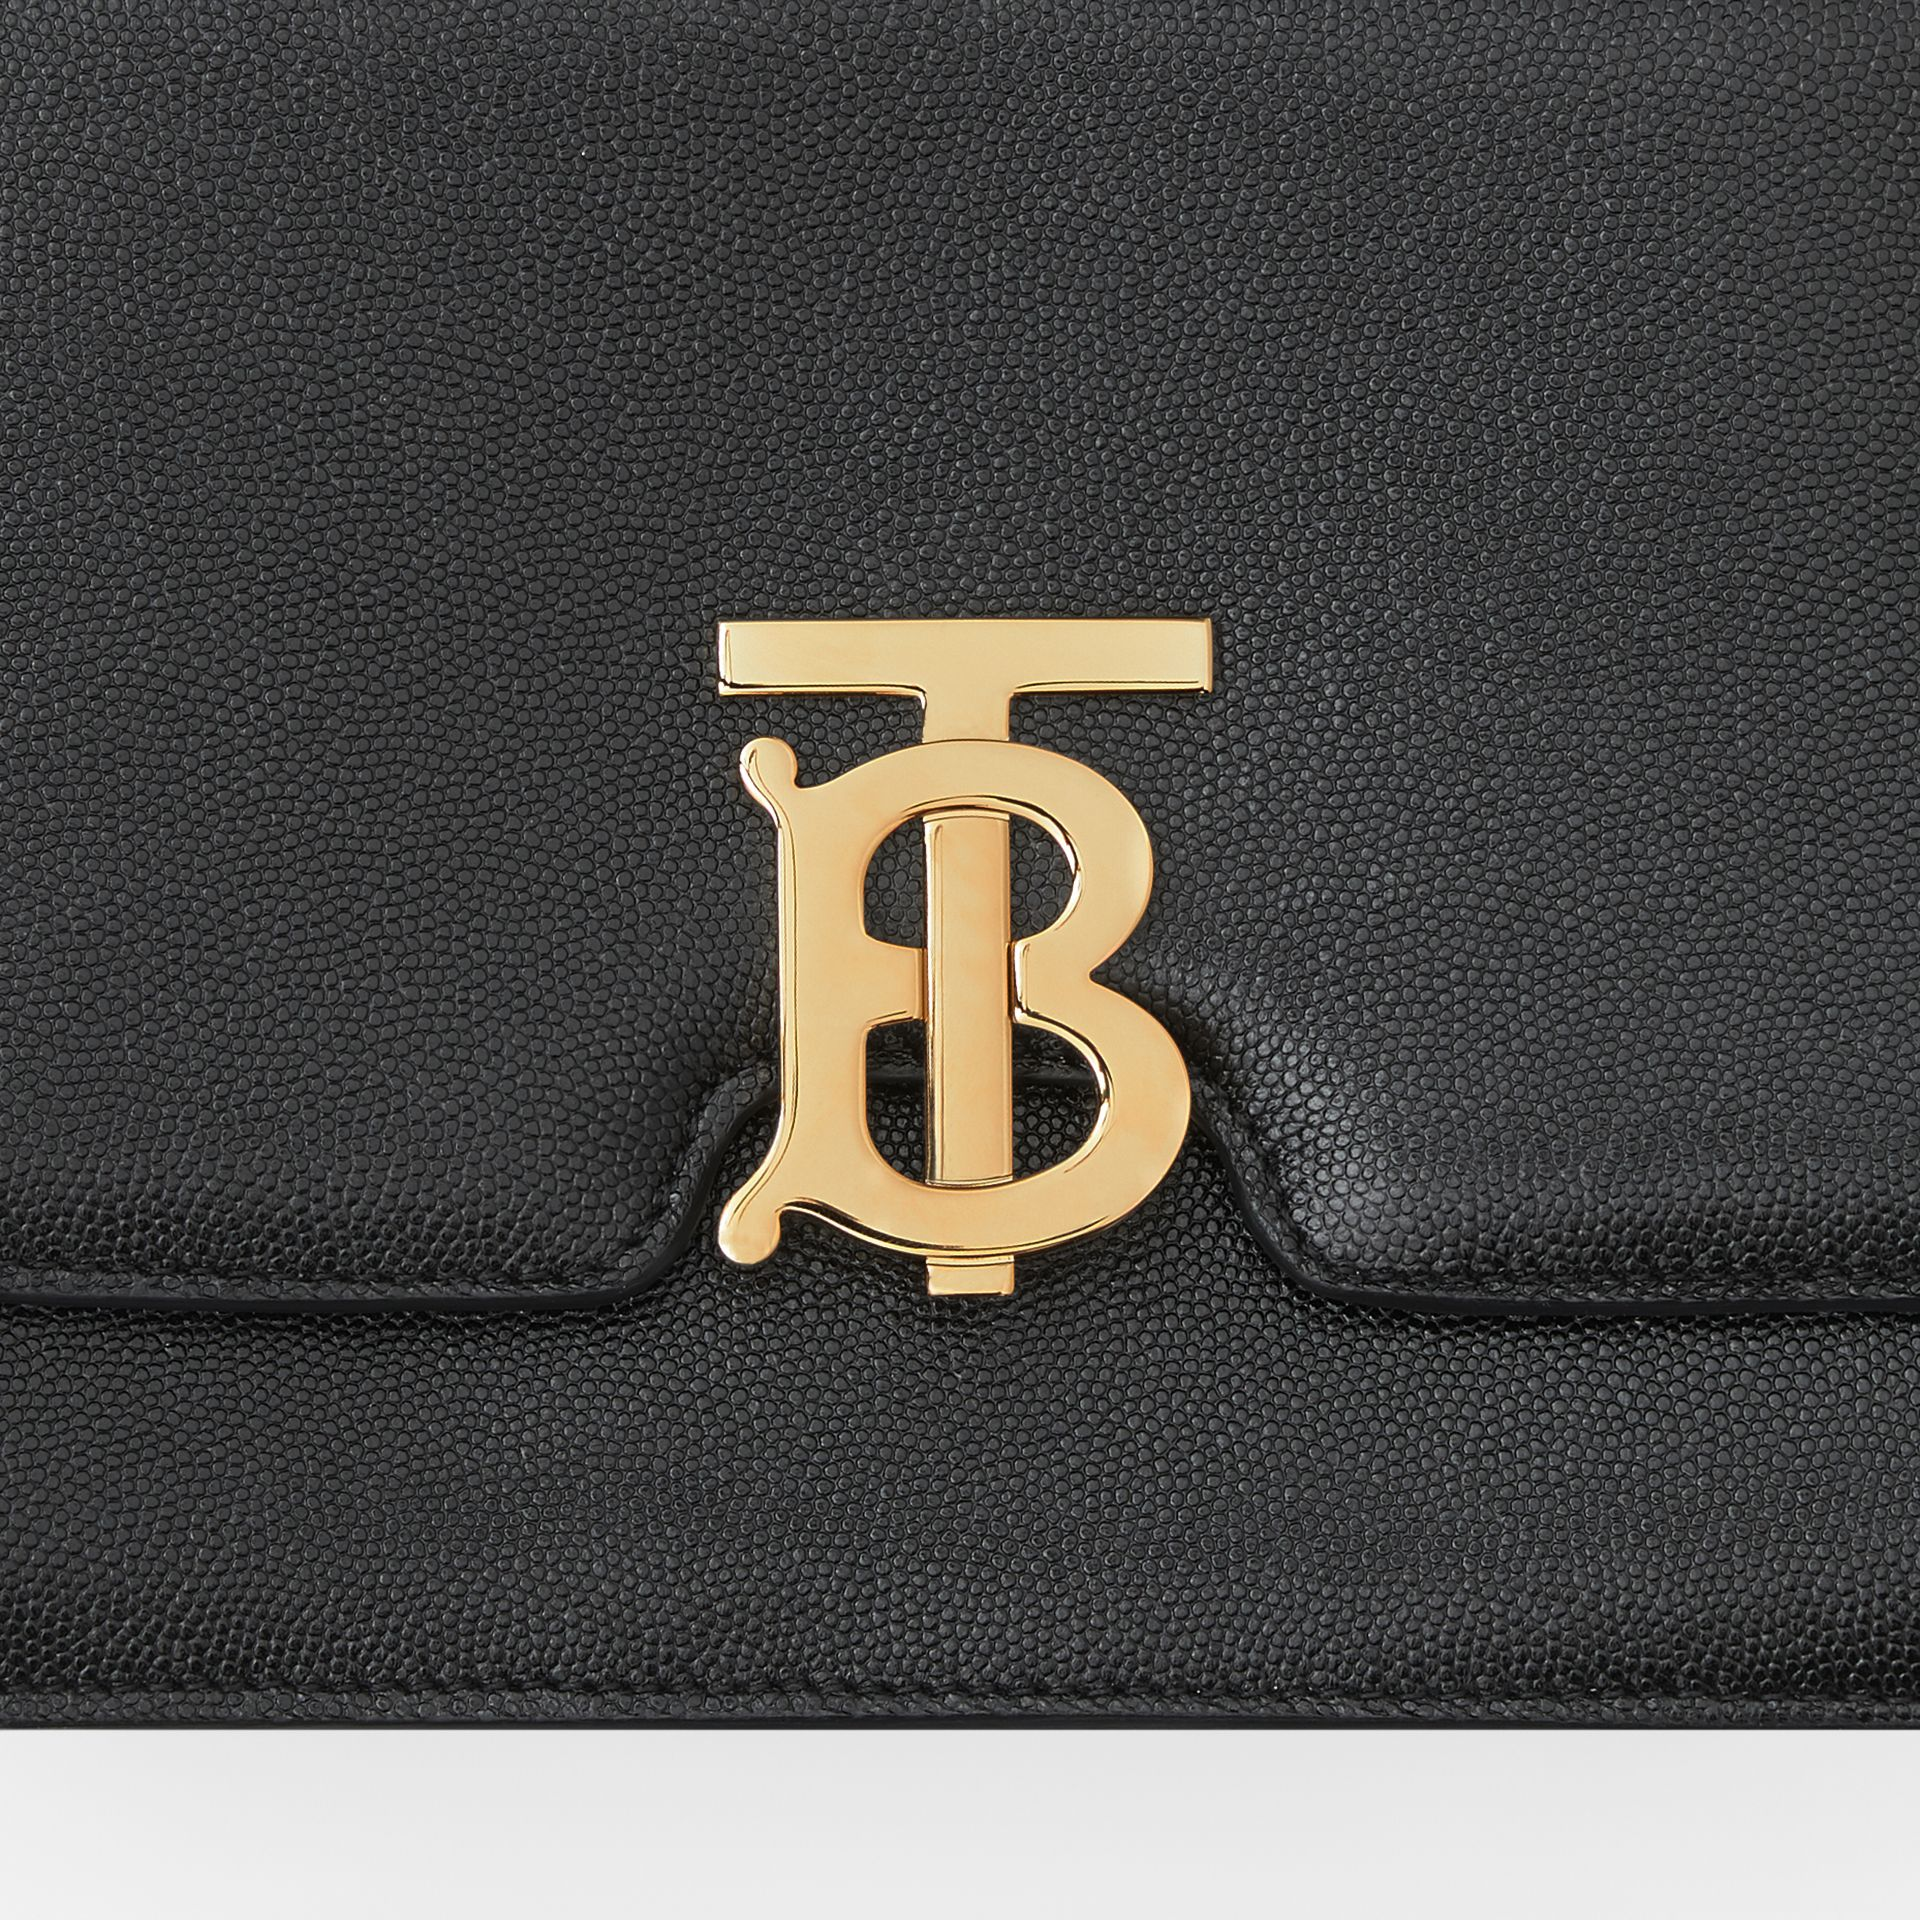 Medium Grainy Leather TB Bag in Black - Women | Burberry - gallery image 1